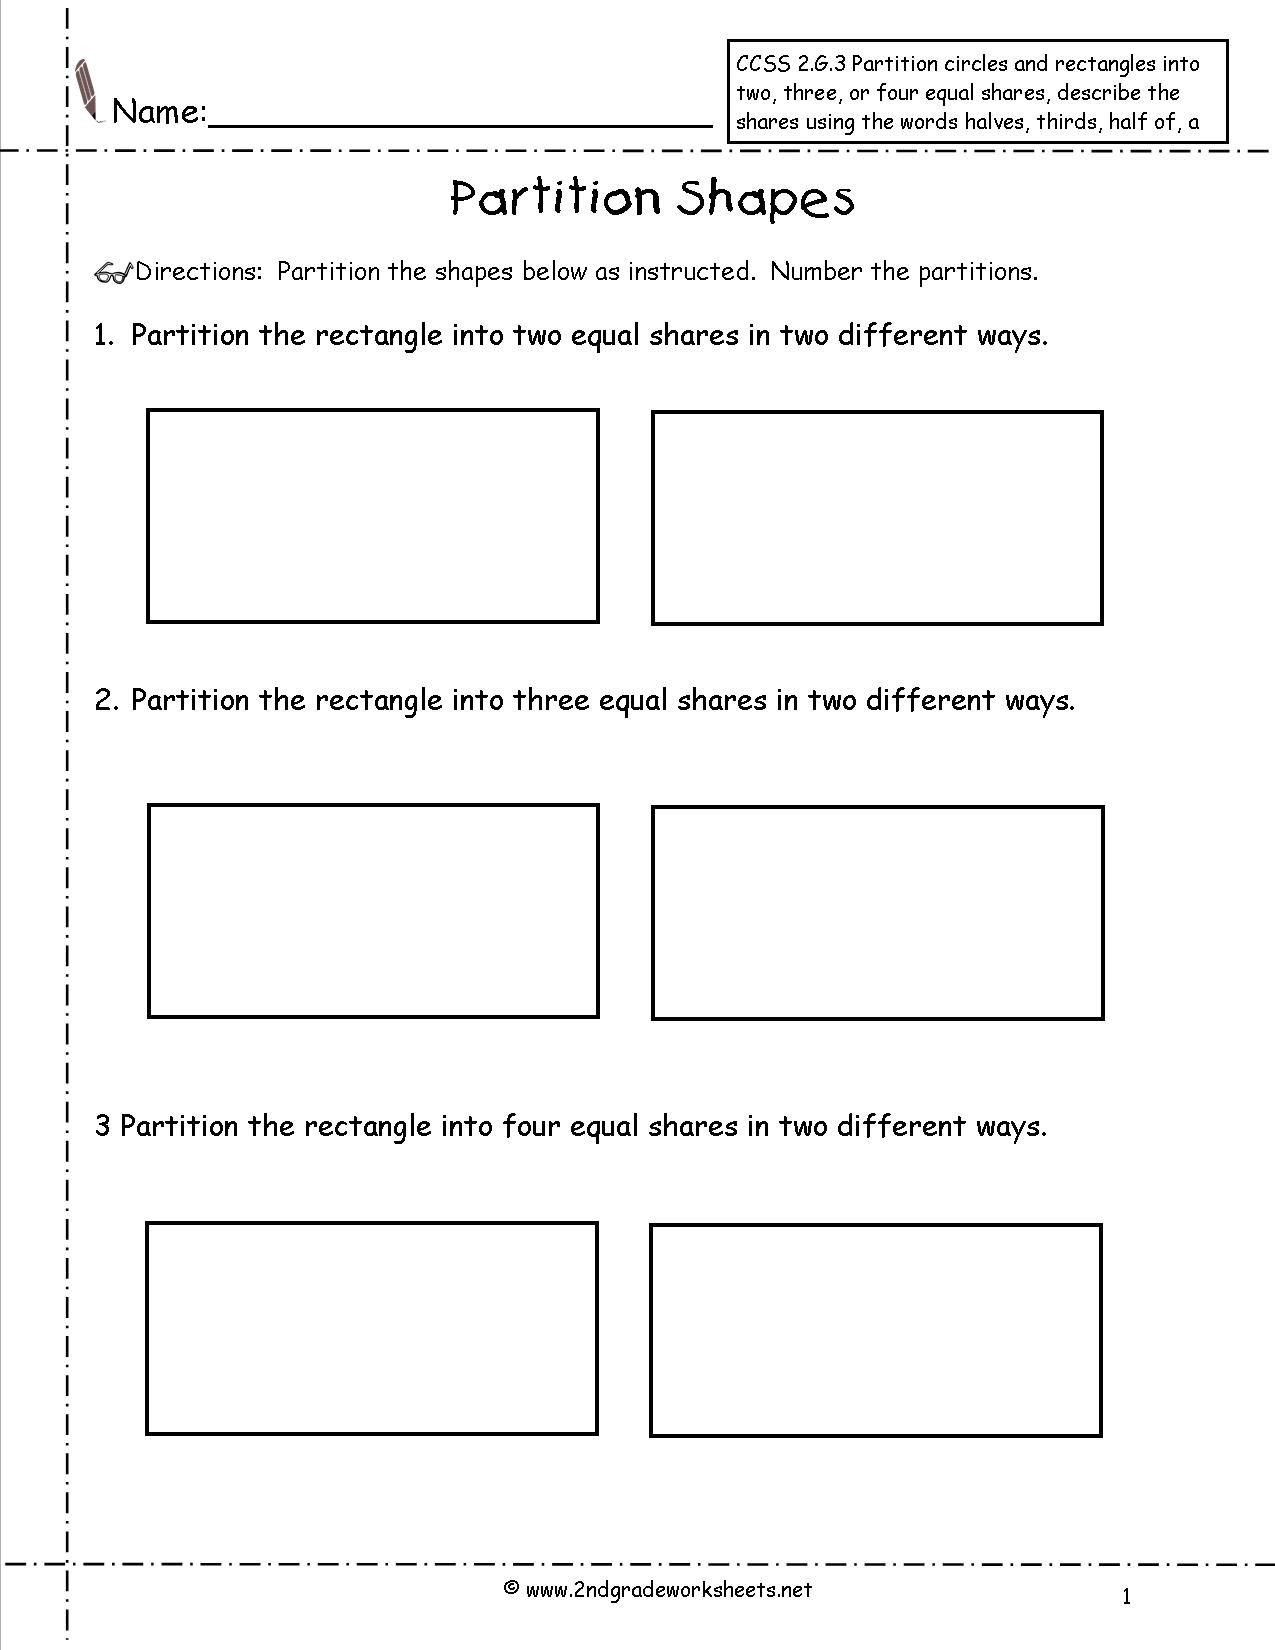 2nd Grade Geometry Worksheets Ccss 2 G 3 Worksheets Partition Shapes